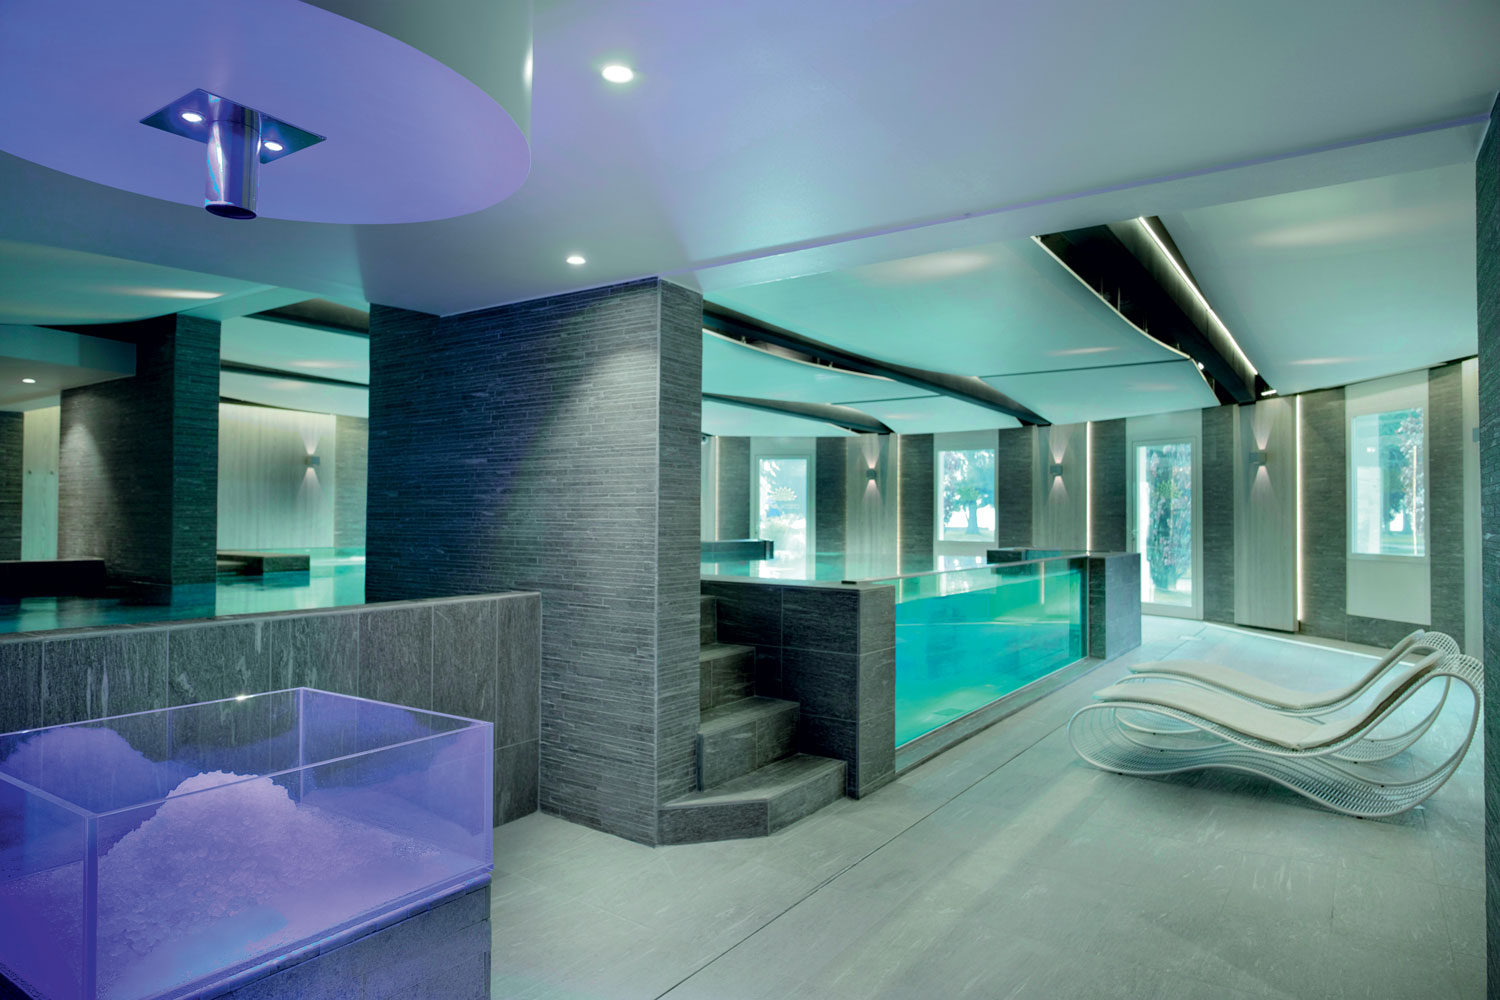 Cristal Spa, Imperial Palace Hotel Annecy, France. Tiled surfaces: Mystone Pietra di Vals by Marazzi